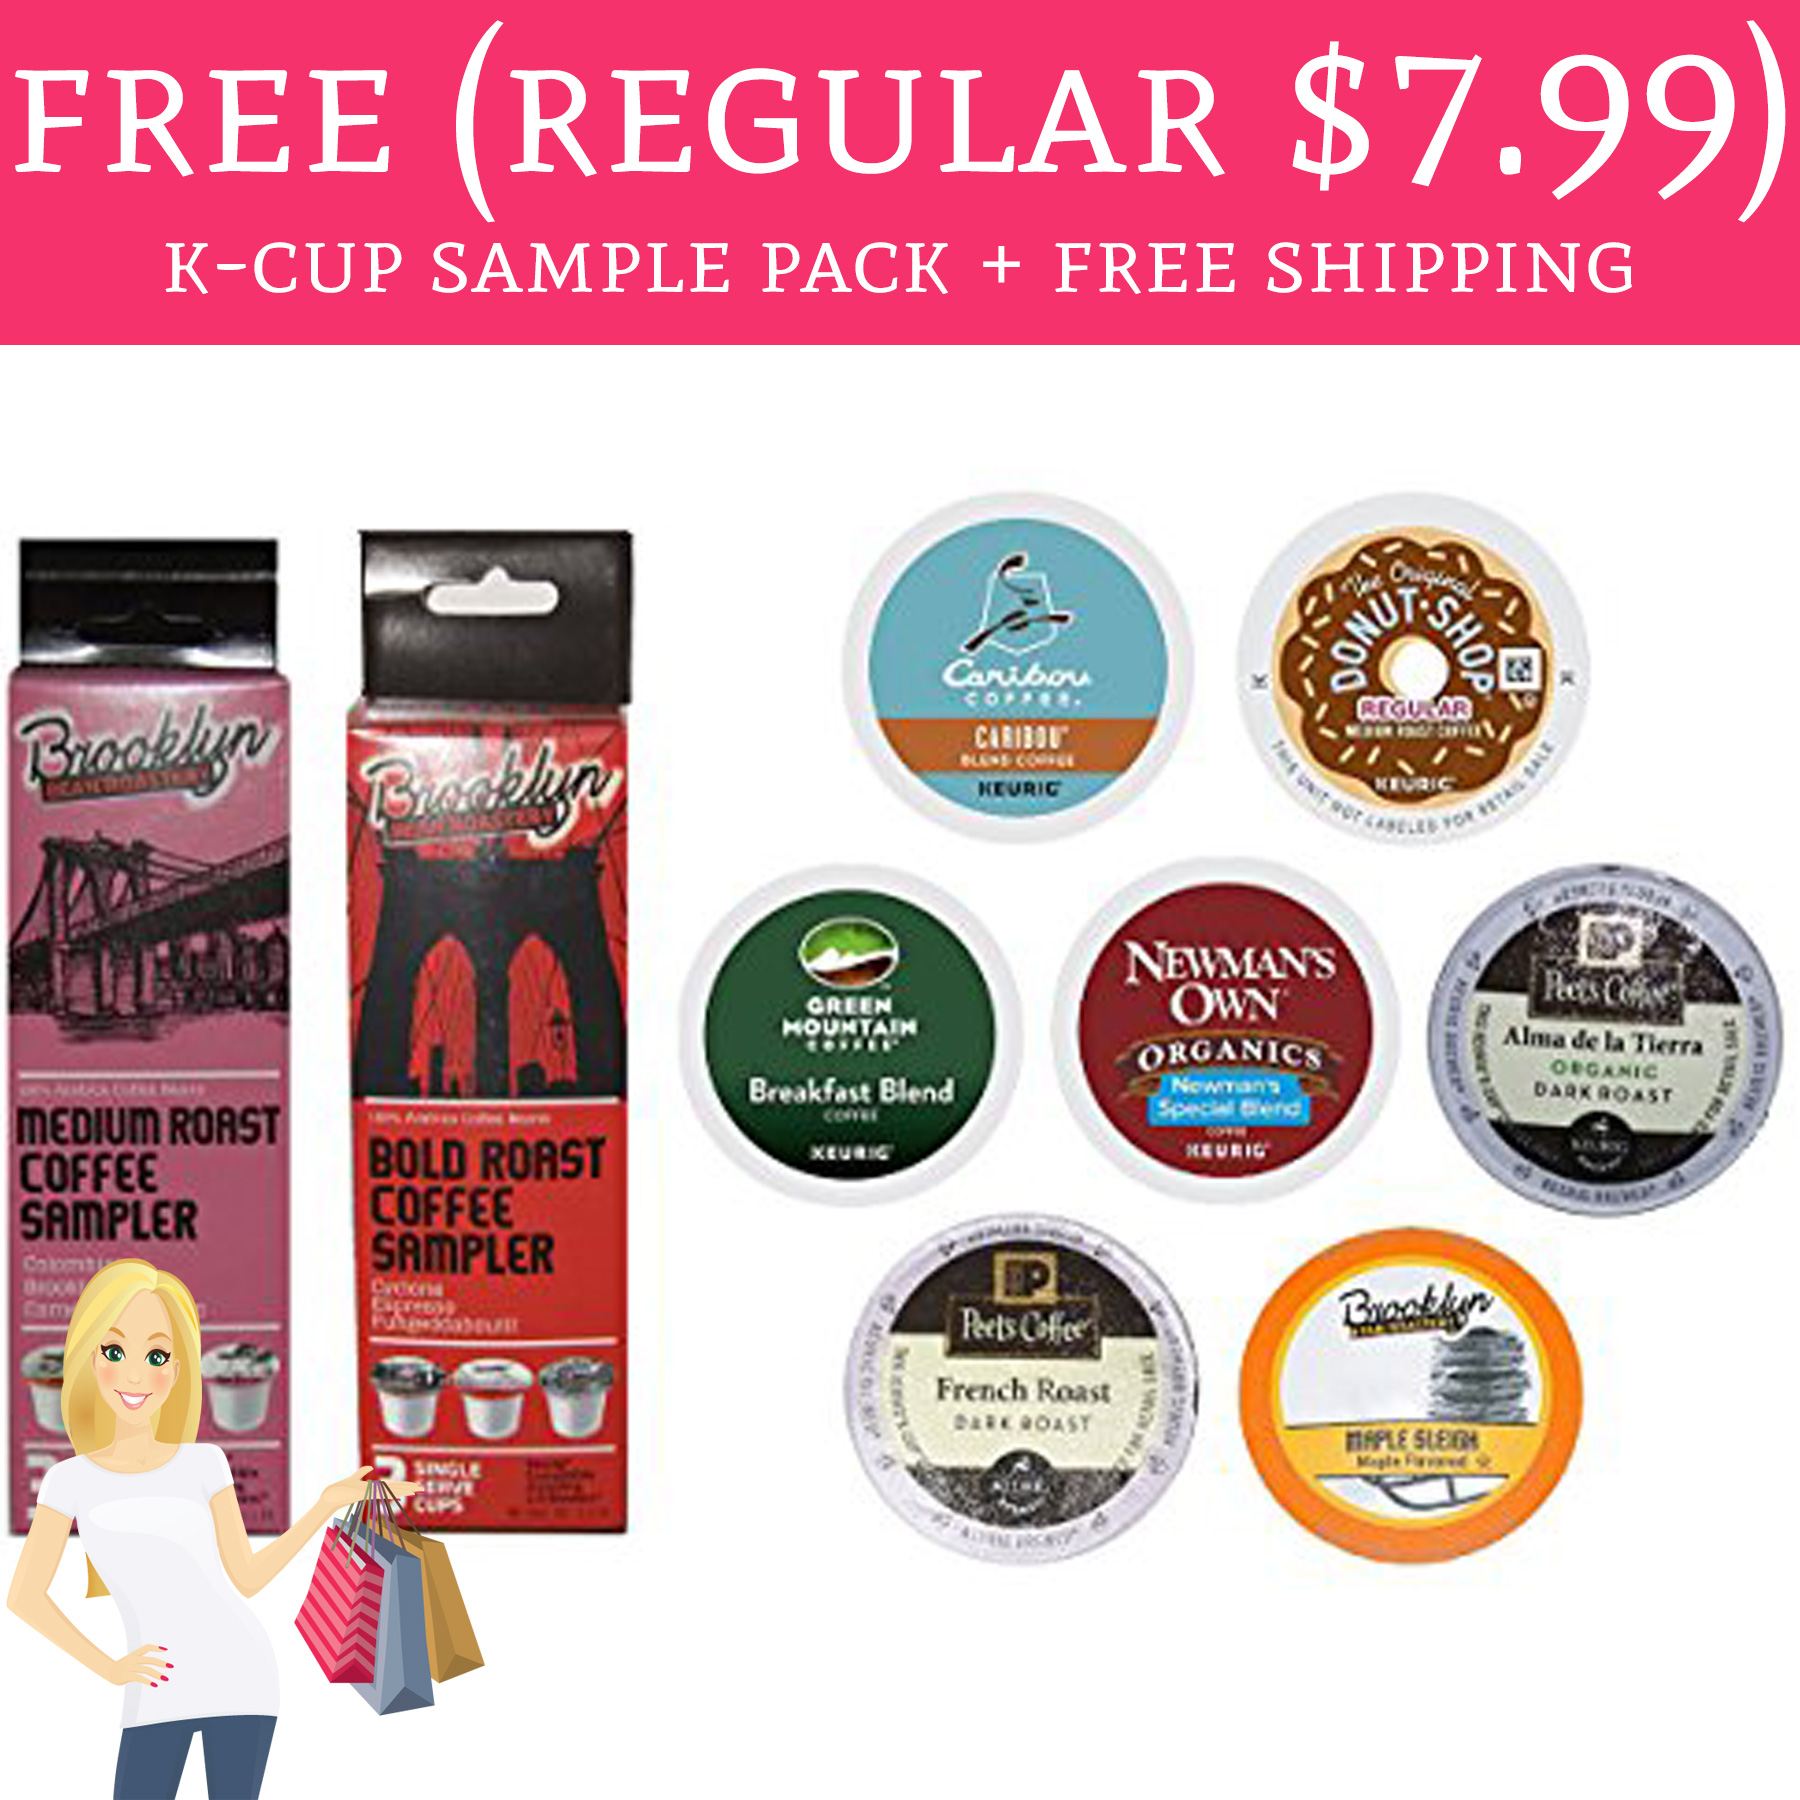 Free Coffee Anyone?! Free K-Cup Sample Pack + Free Shipping ...